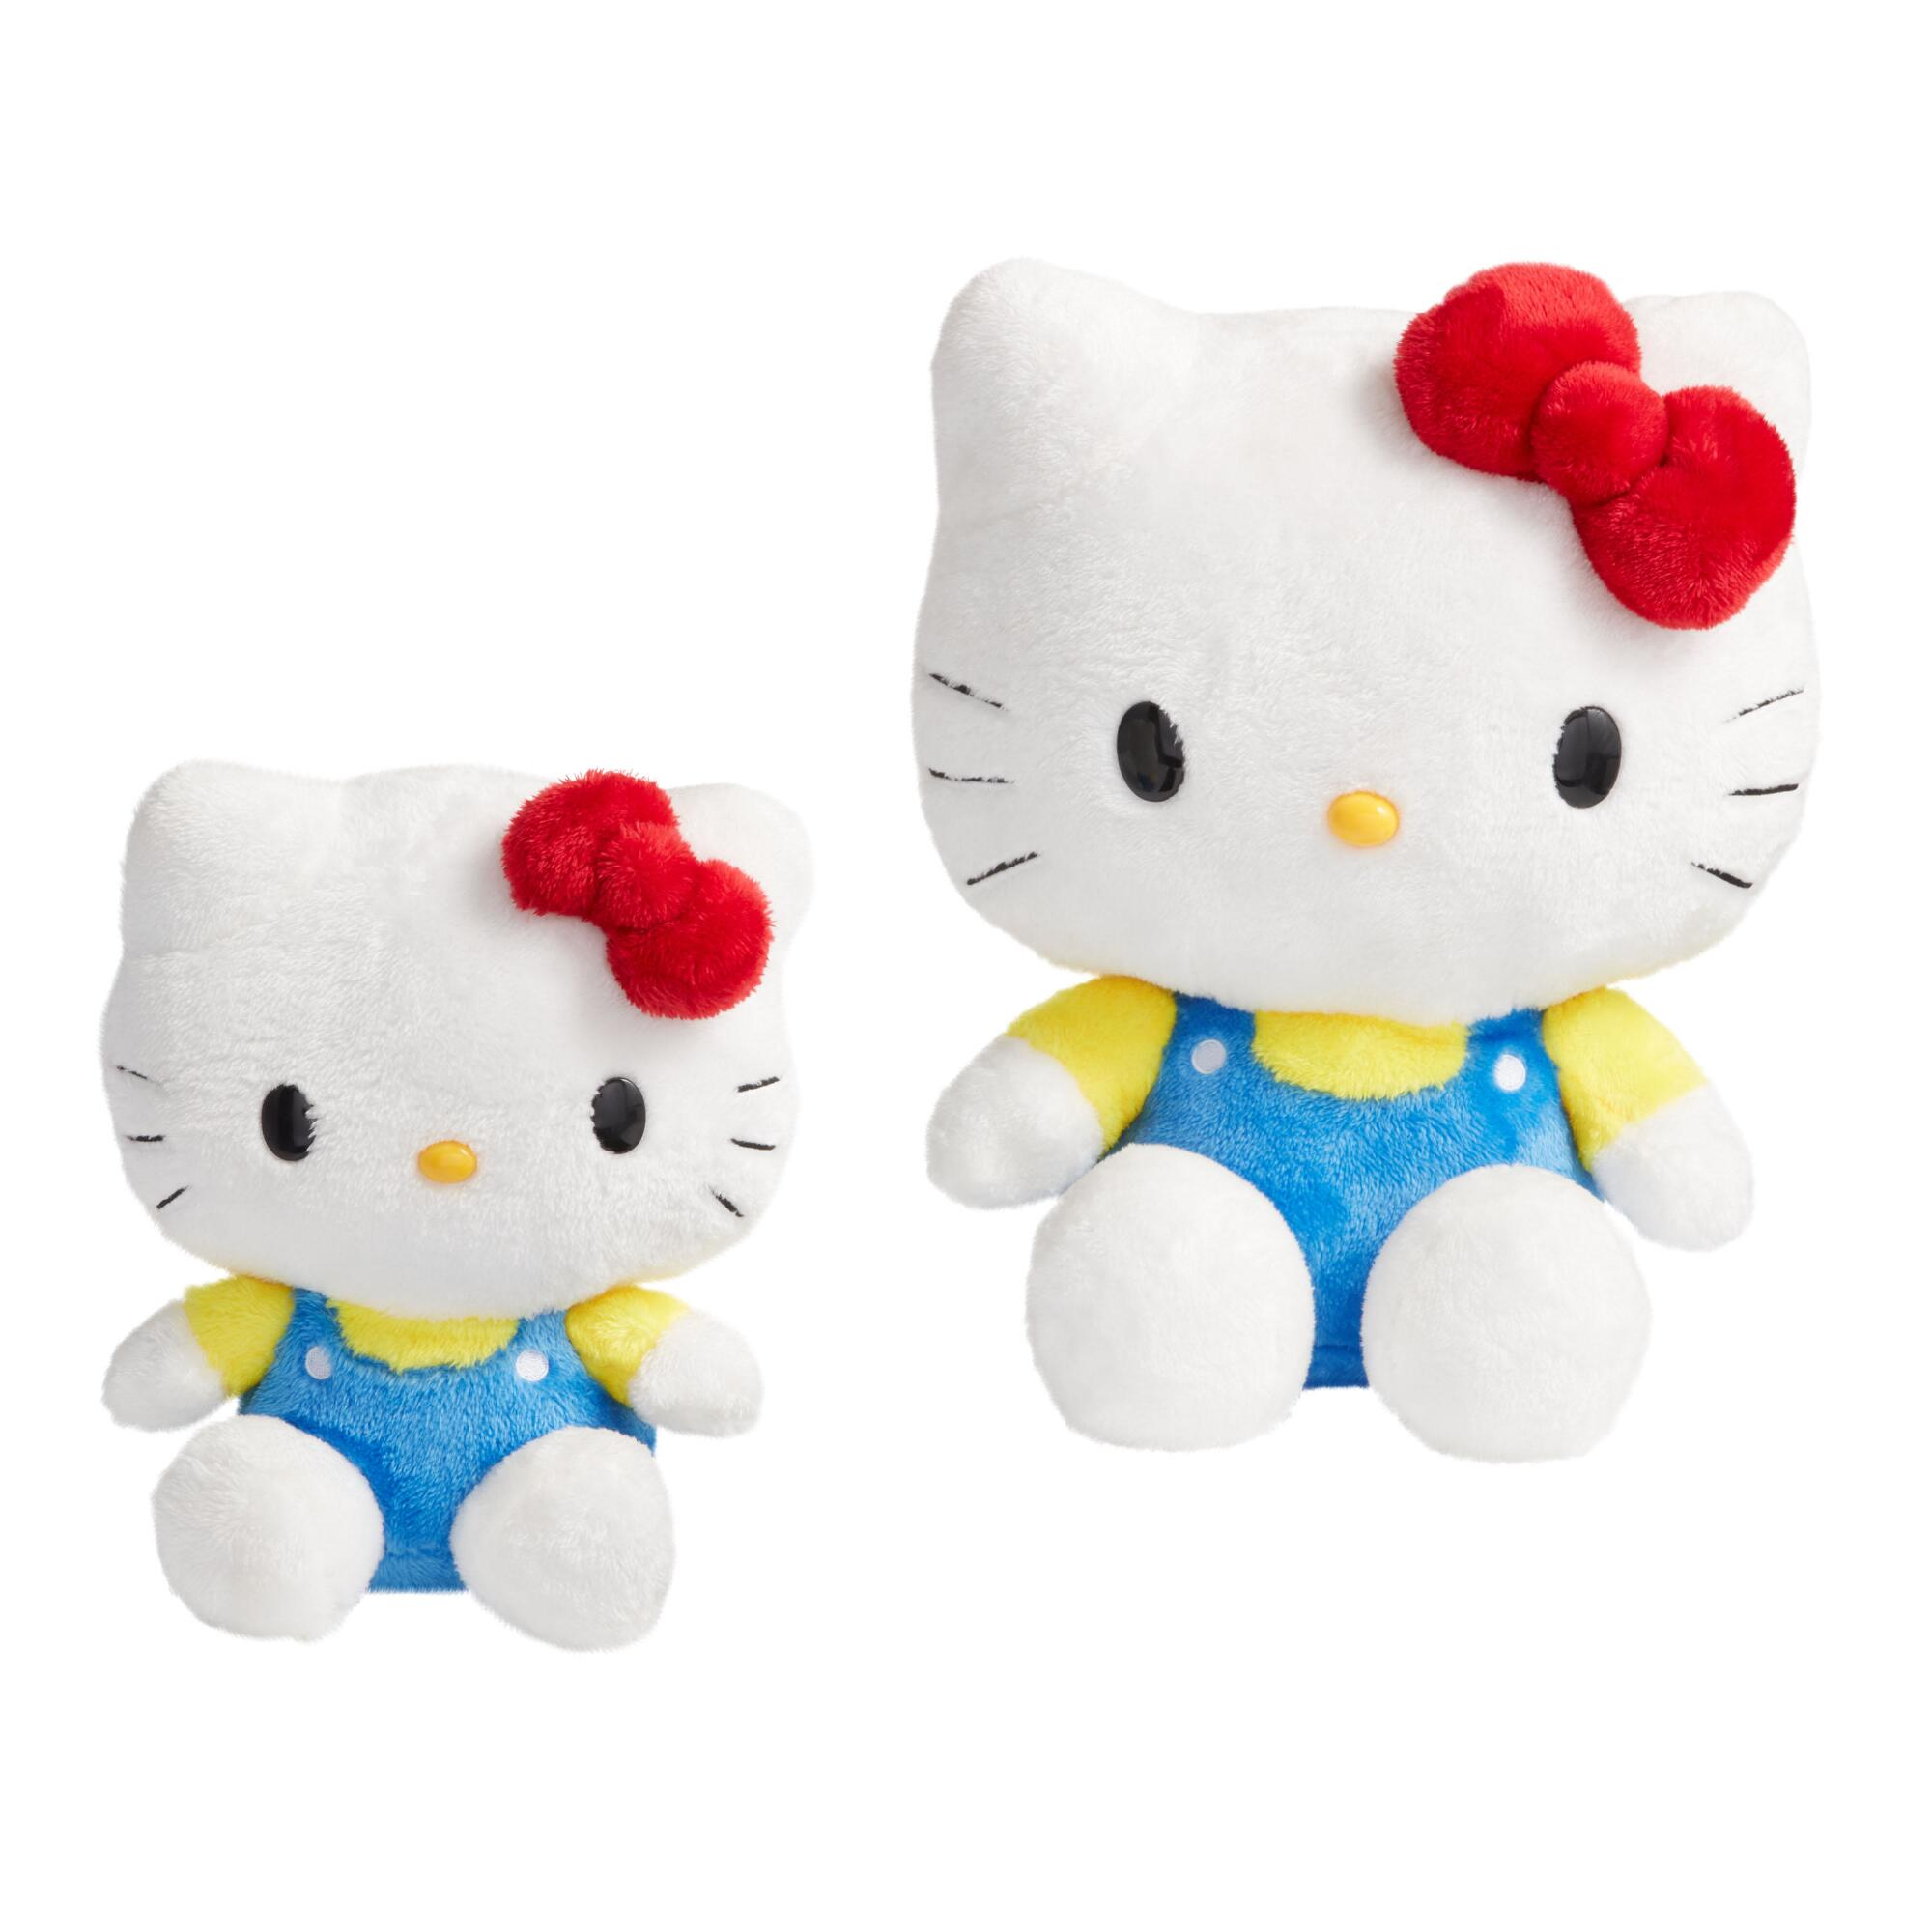 Hello Kitty - Up to 30% Off!